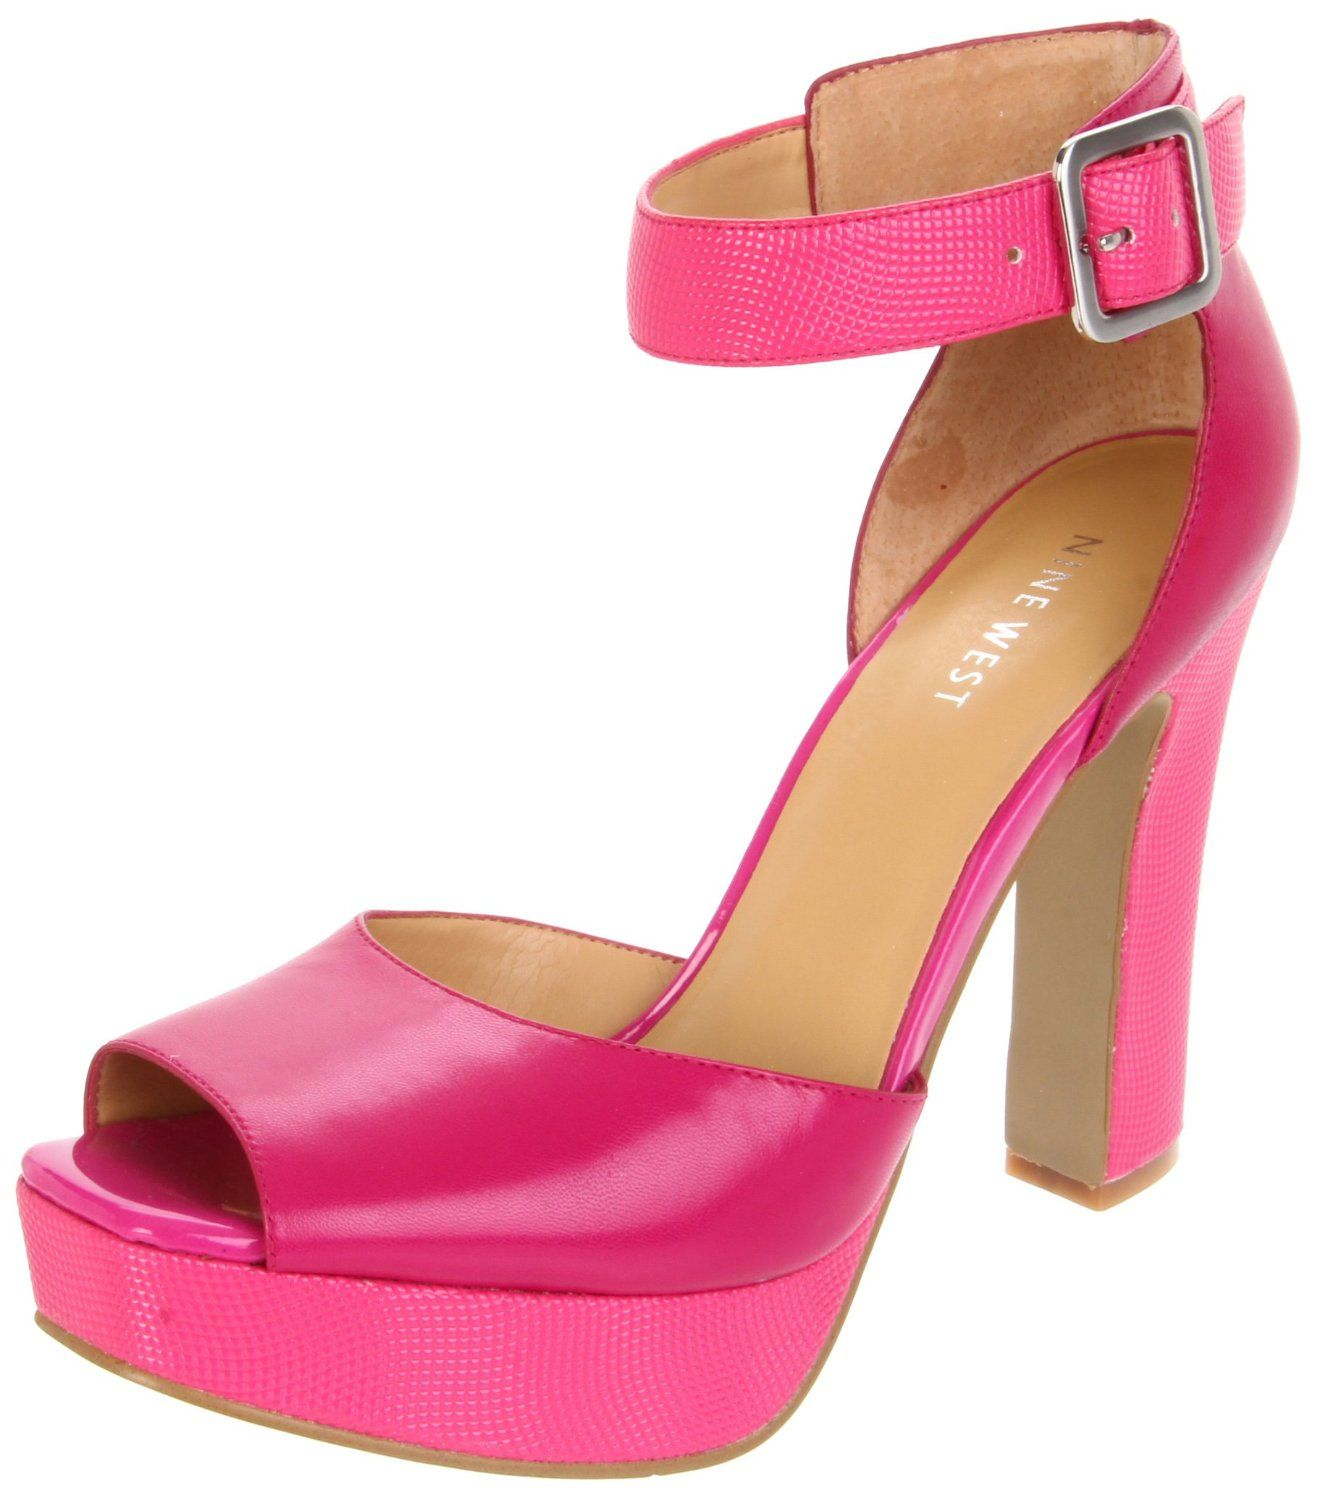 0ed9c0281ff9 Ankle-Strap Sandal from Nine West found on Endless...so cute